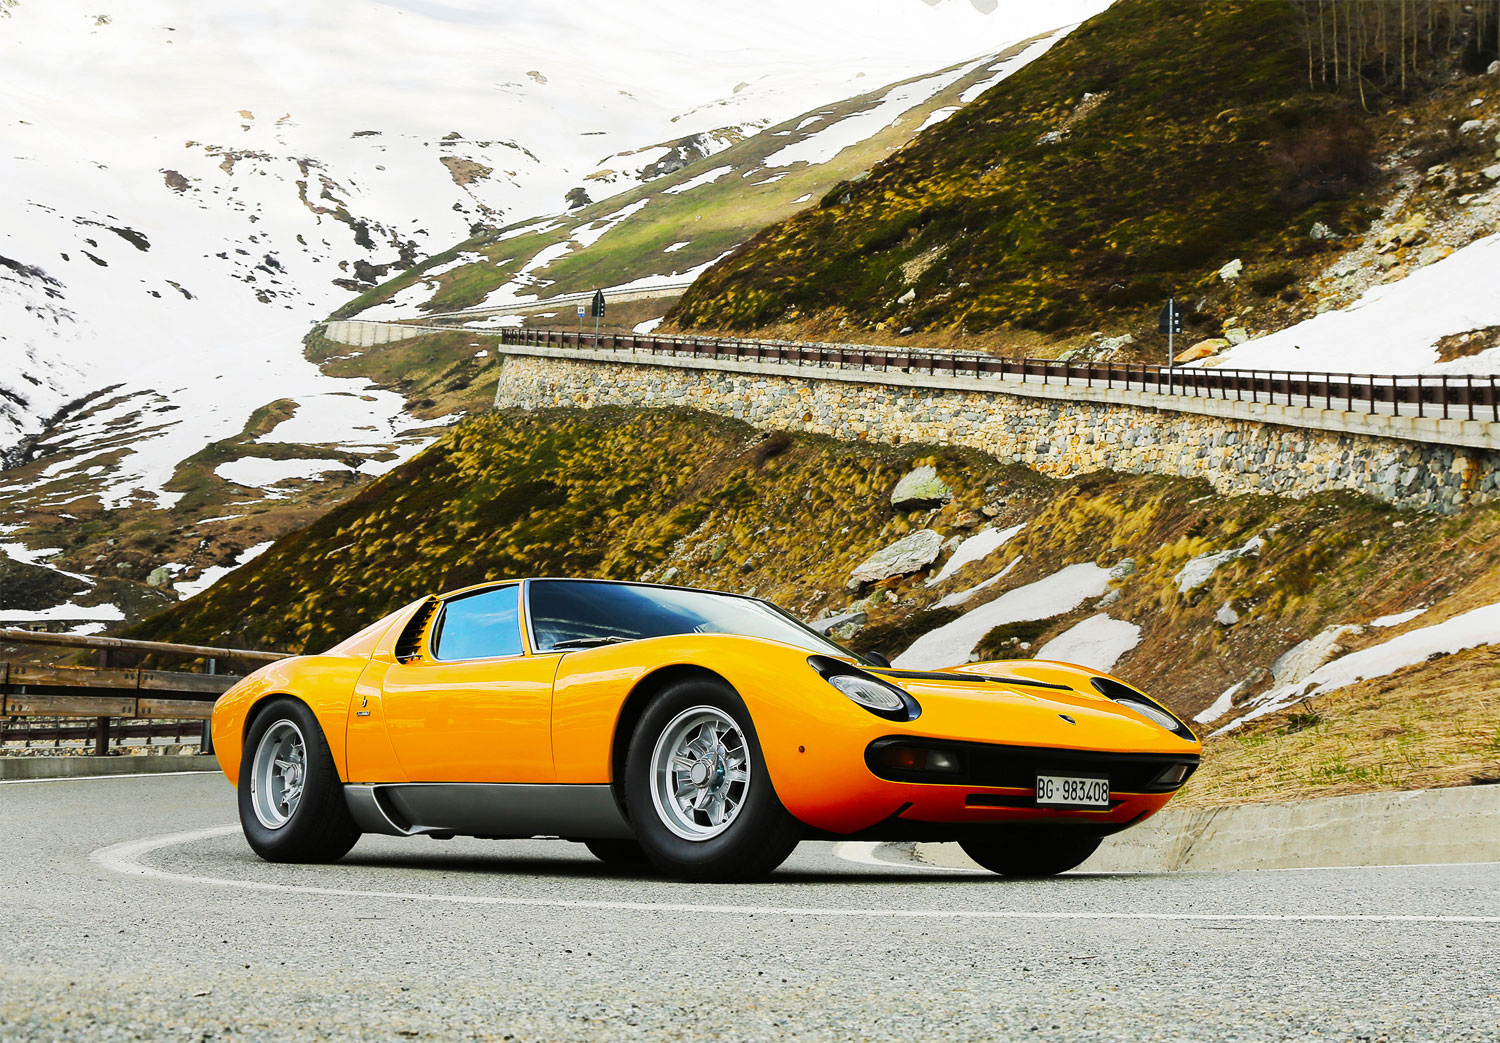 Lamborghini Miura P400 on the original Italian Job movie route